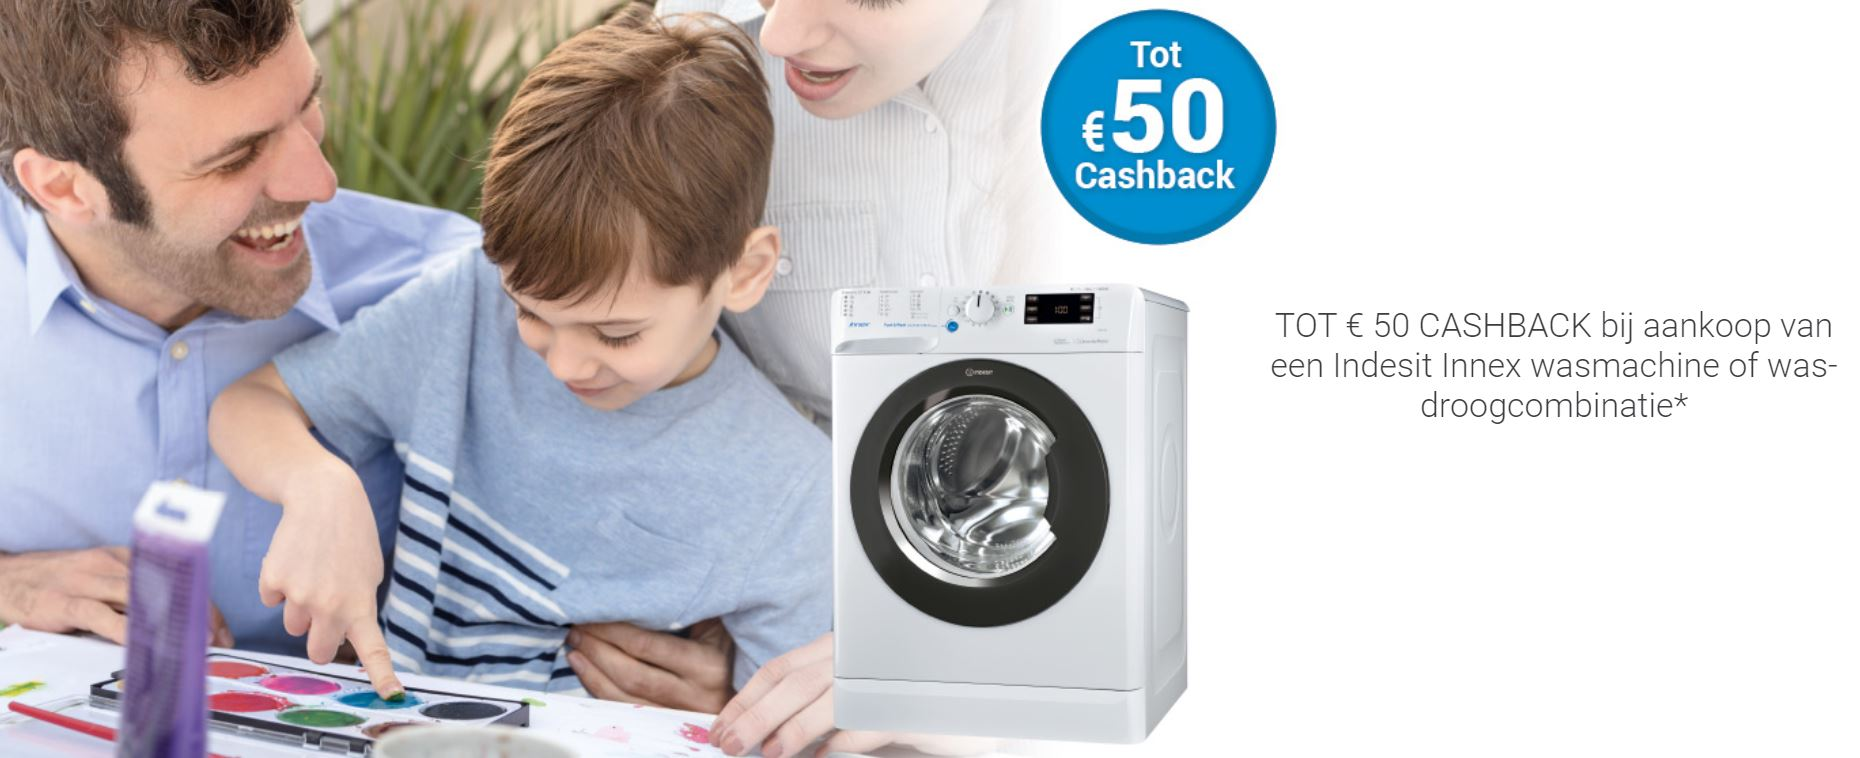 Was Droog Combinatie Indesit Indesit Washing Cashback Acties Art Craft